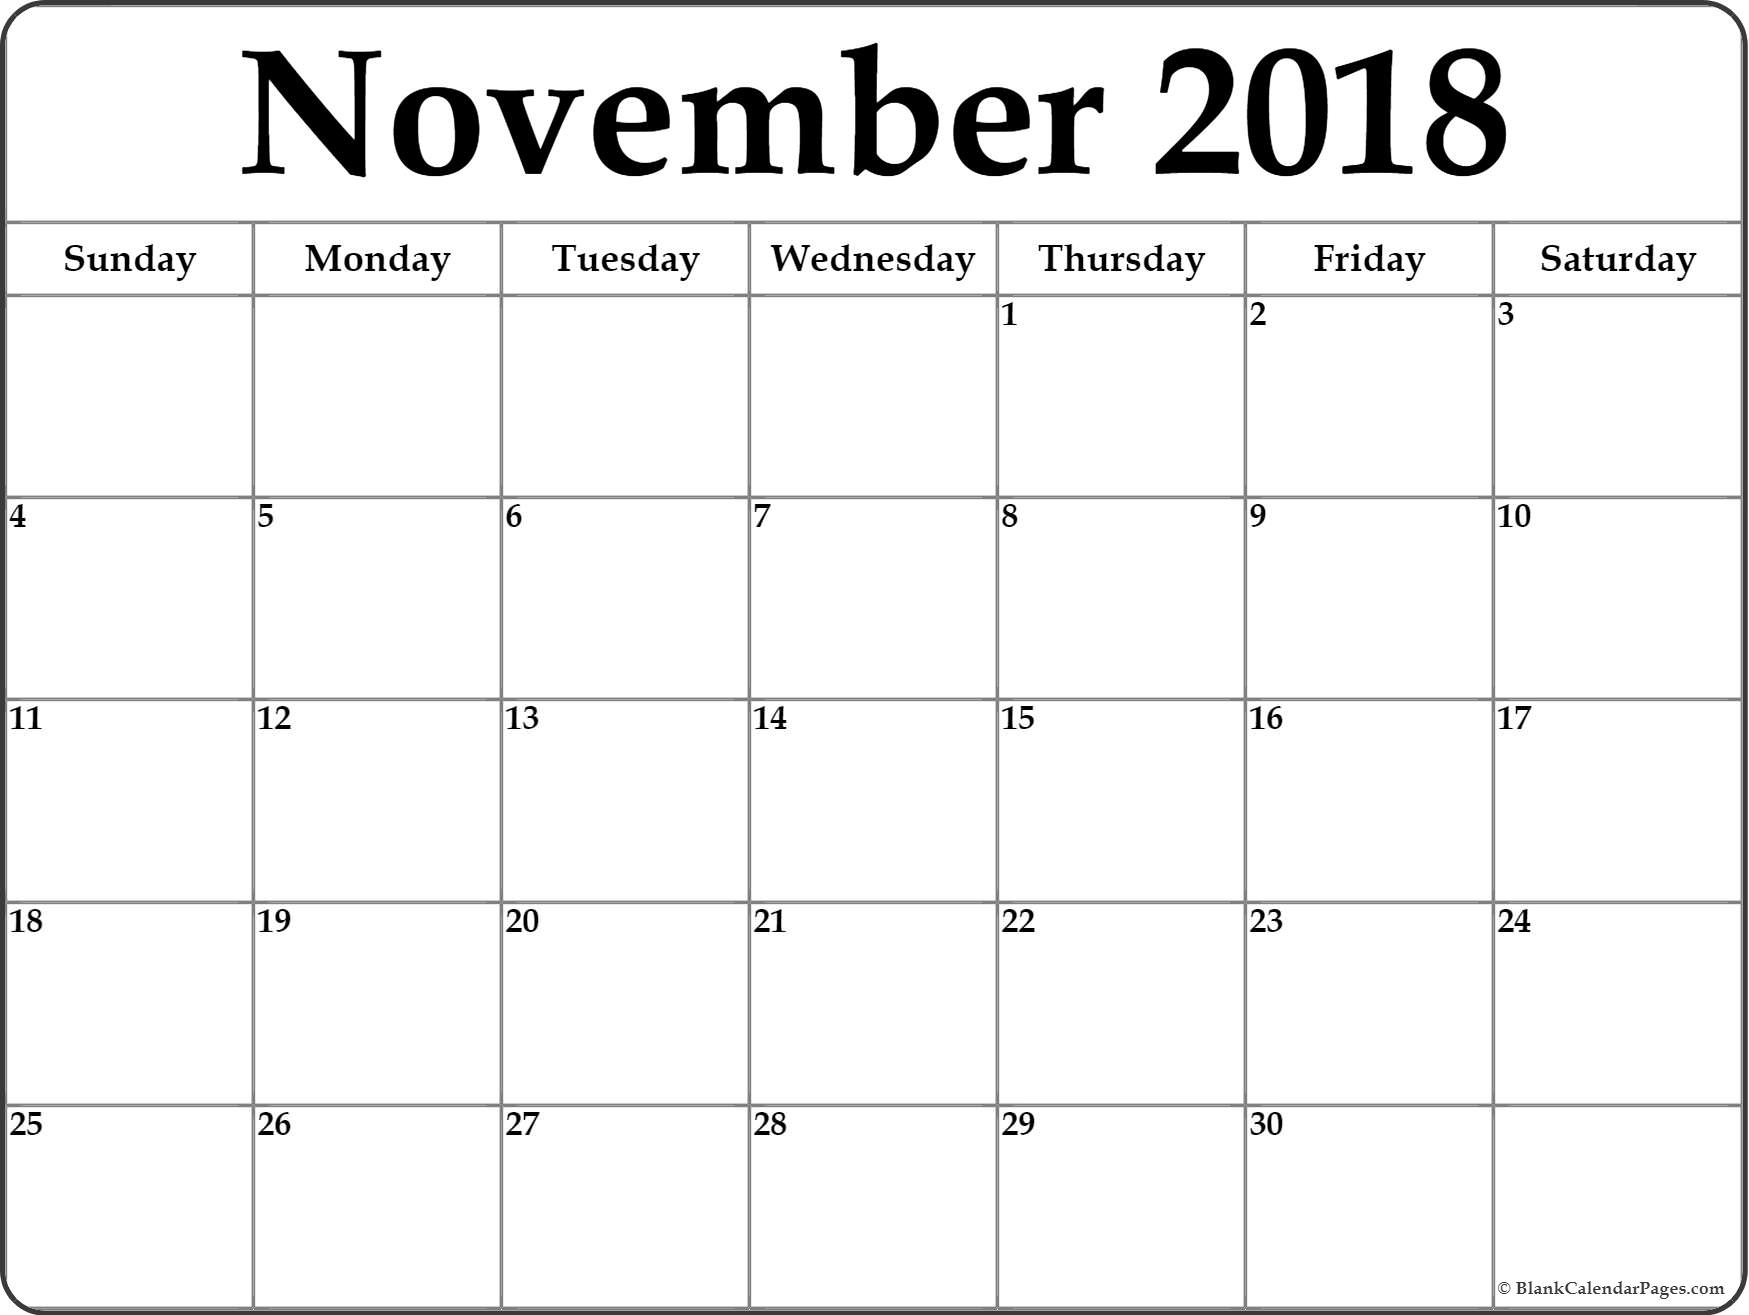 November 2018 Calendar | Free Printable Monthly Calendars regarding Blank Calendar Template November